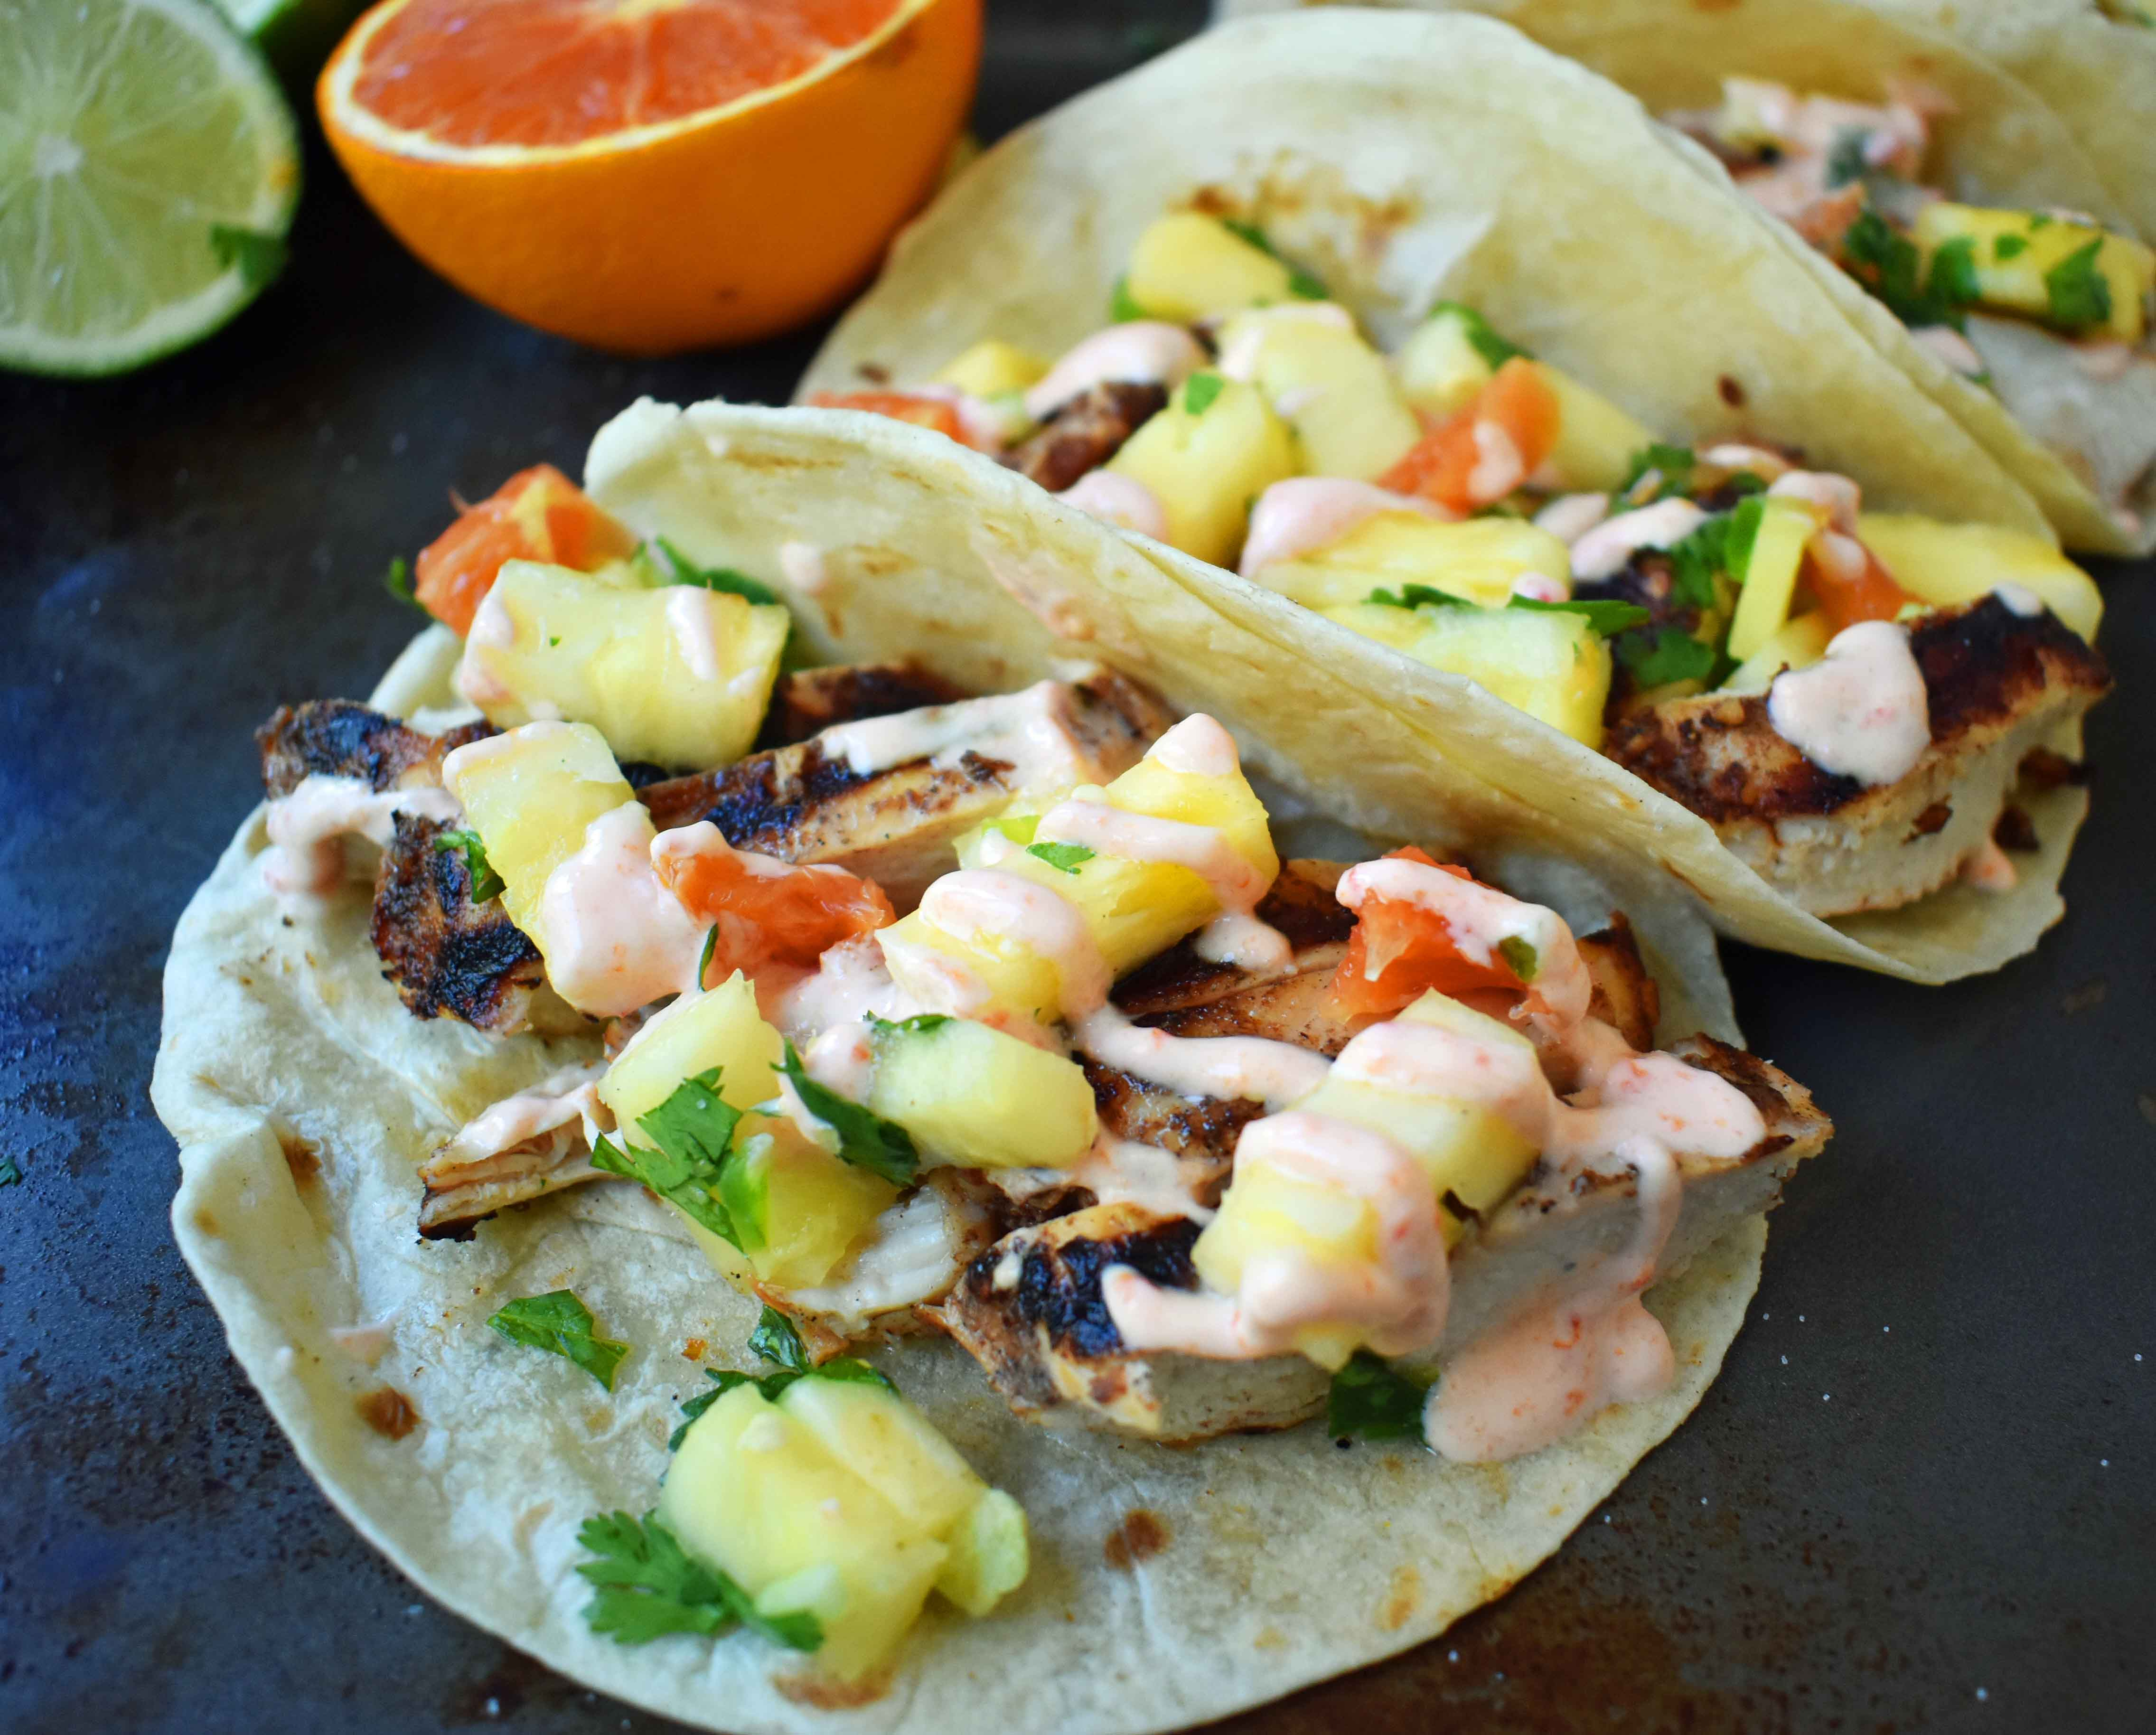 Jamaican Jerk Chicken Tacos. Caribbean spiced citrus grilled chicken filled tacos with pineapple salsa and spicy cream. www.modernhoney.com